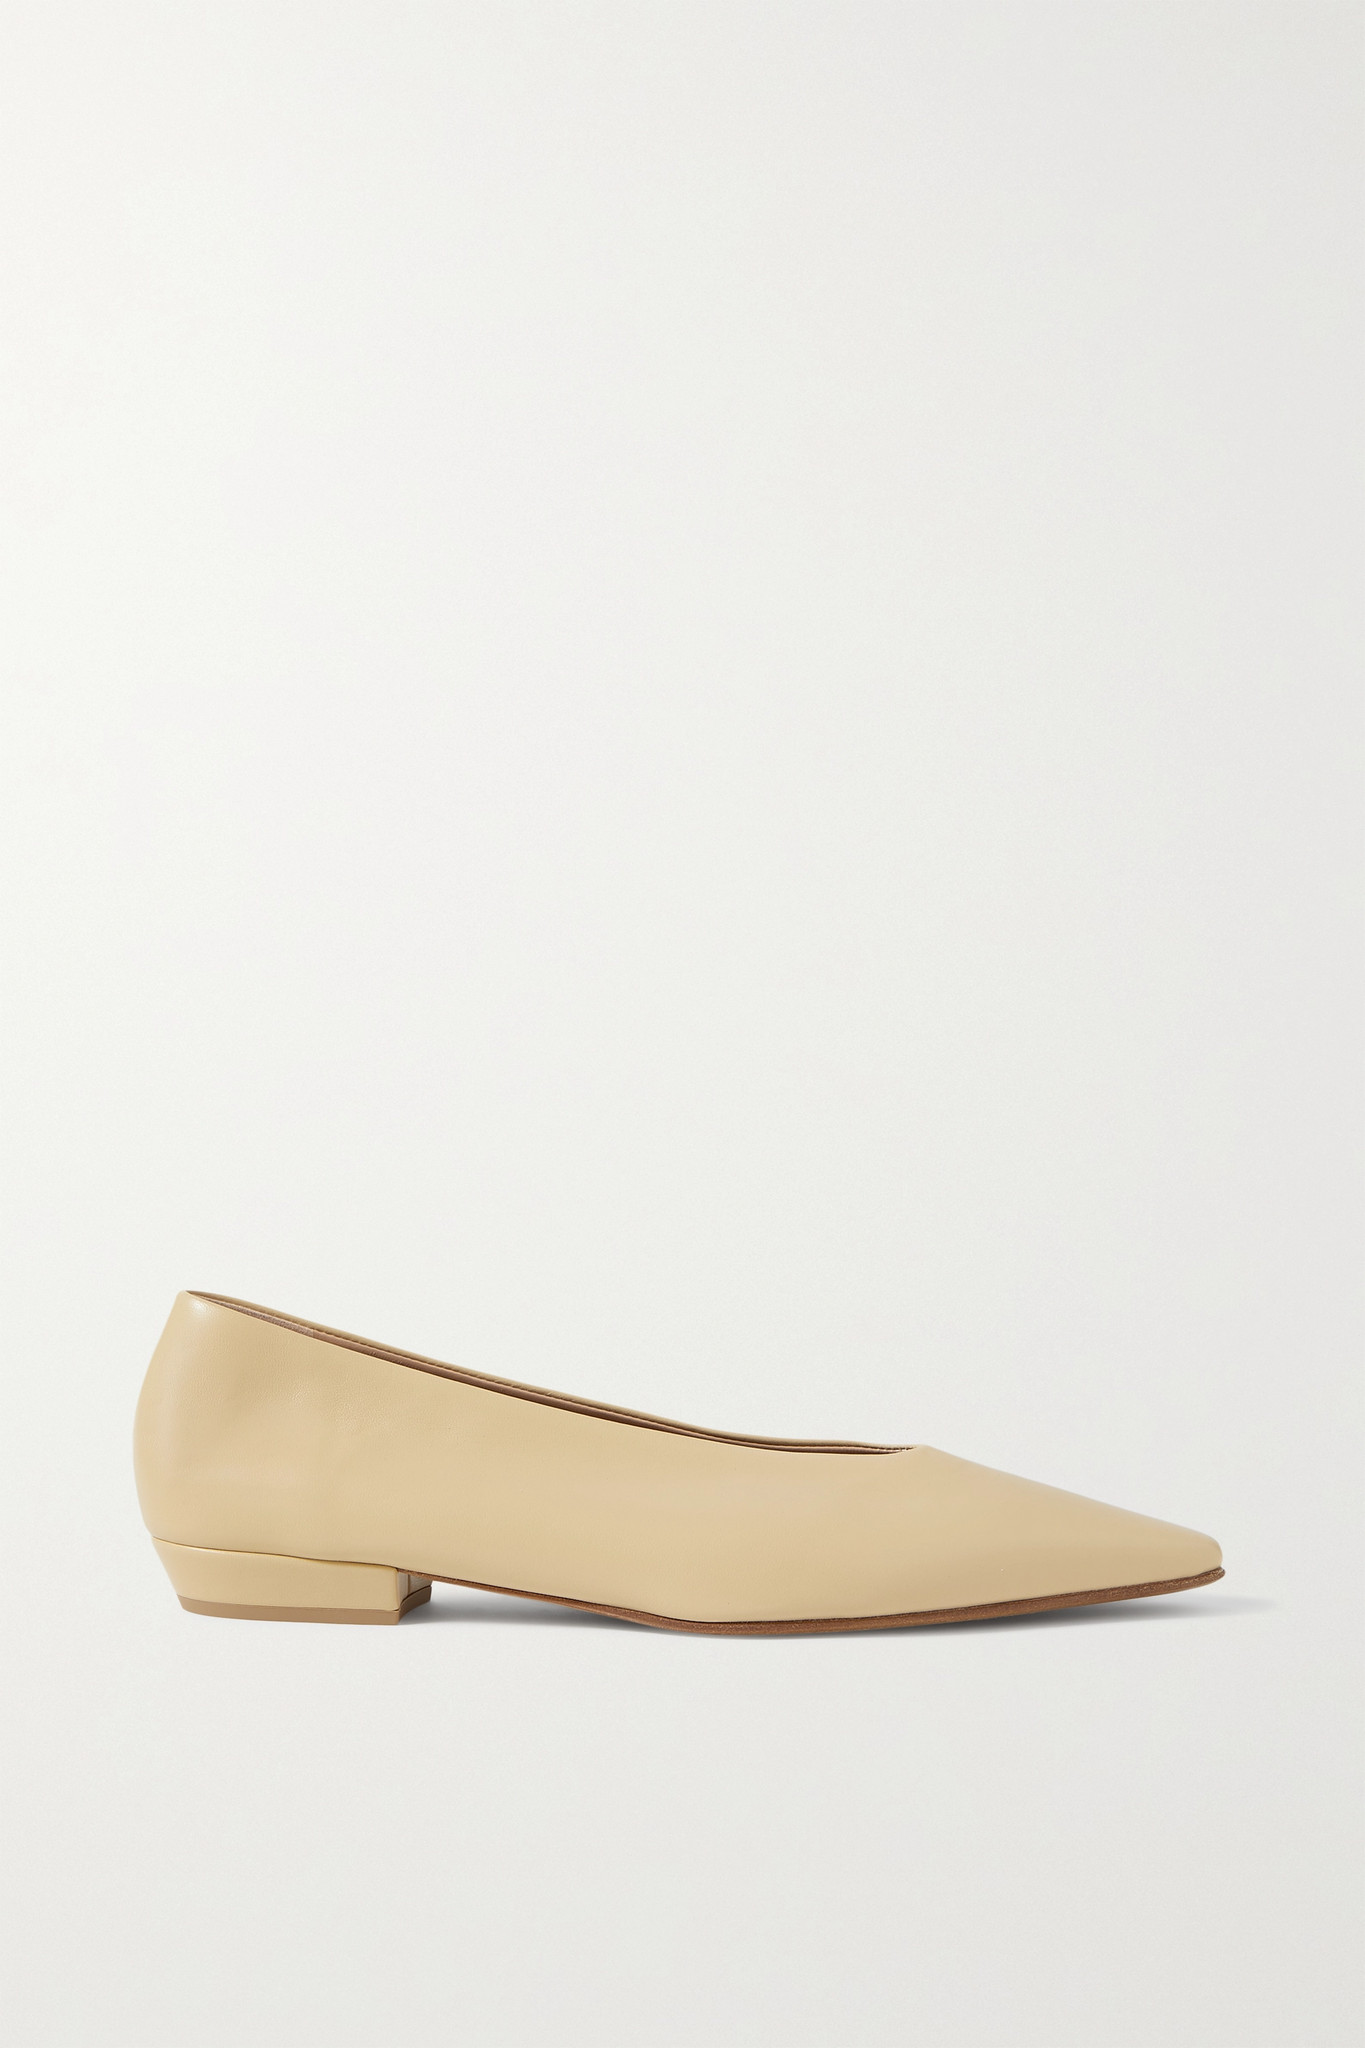 BOTTEGA VENETA - Leather Ballet Flats - Neutrals - IT37